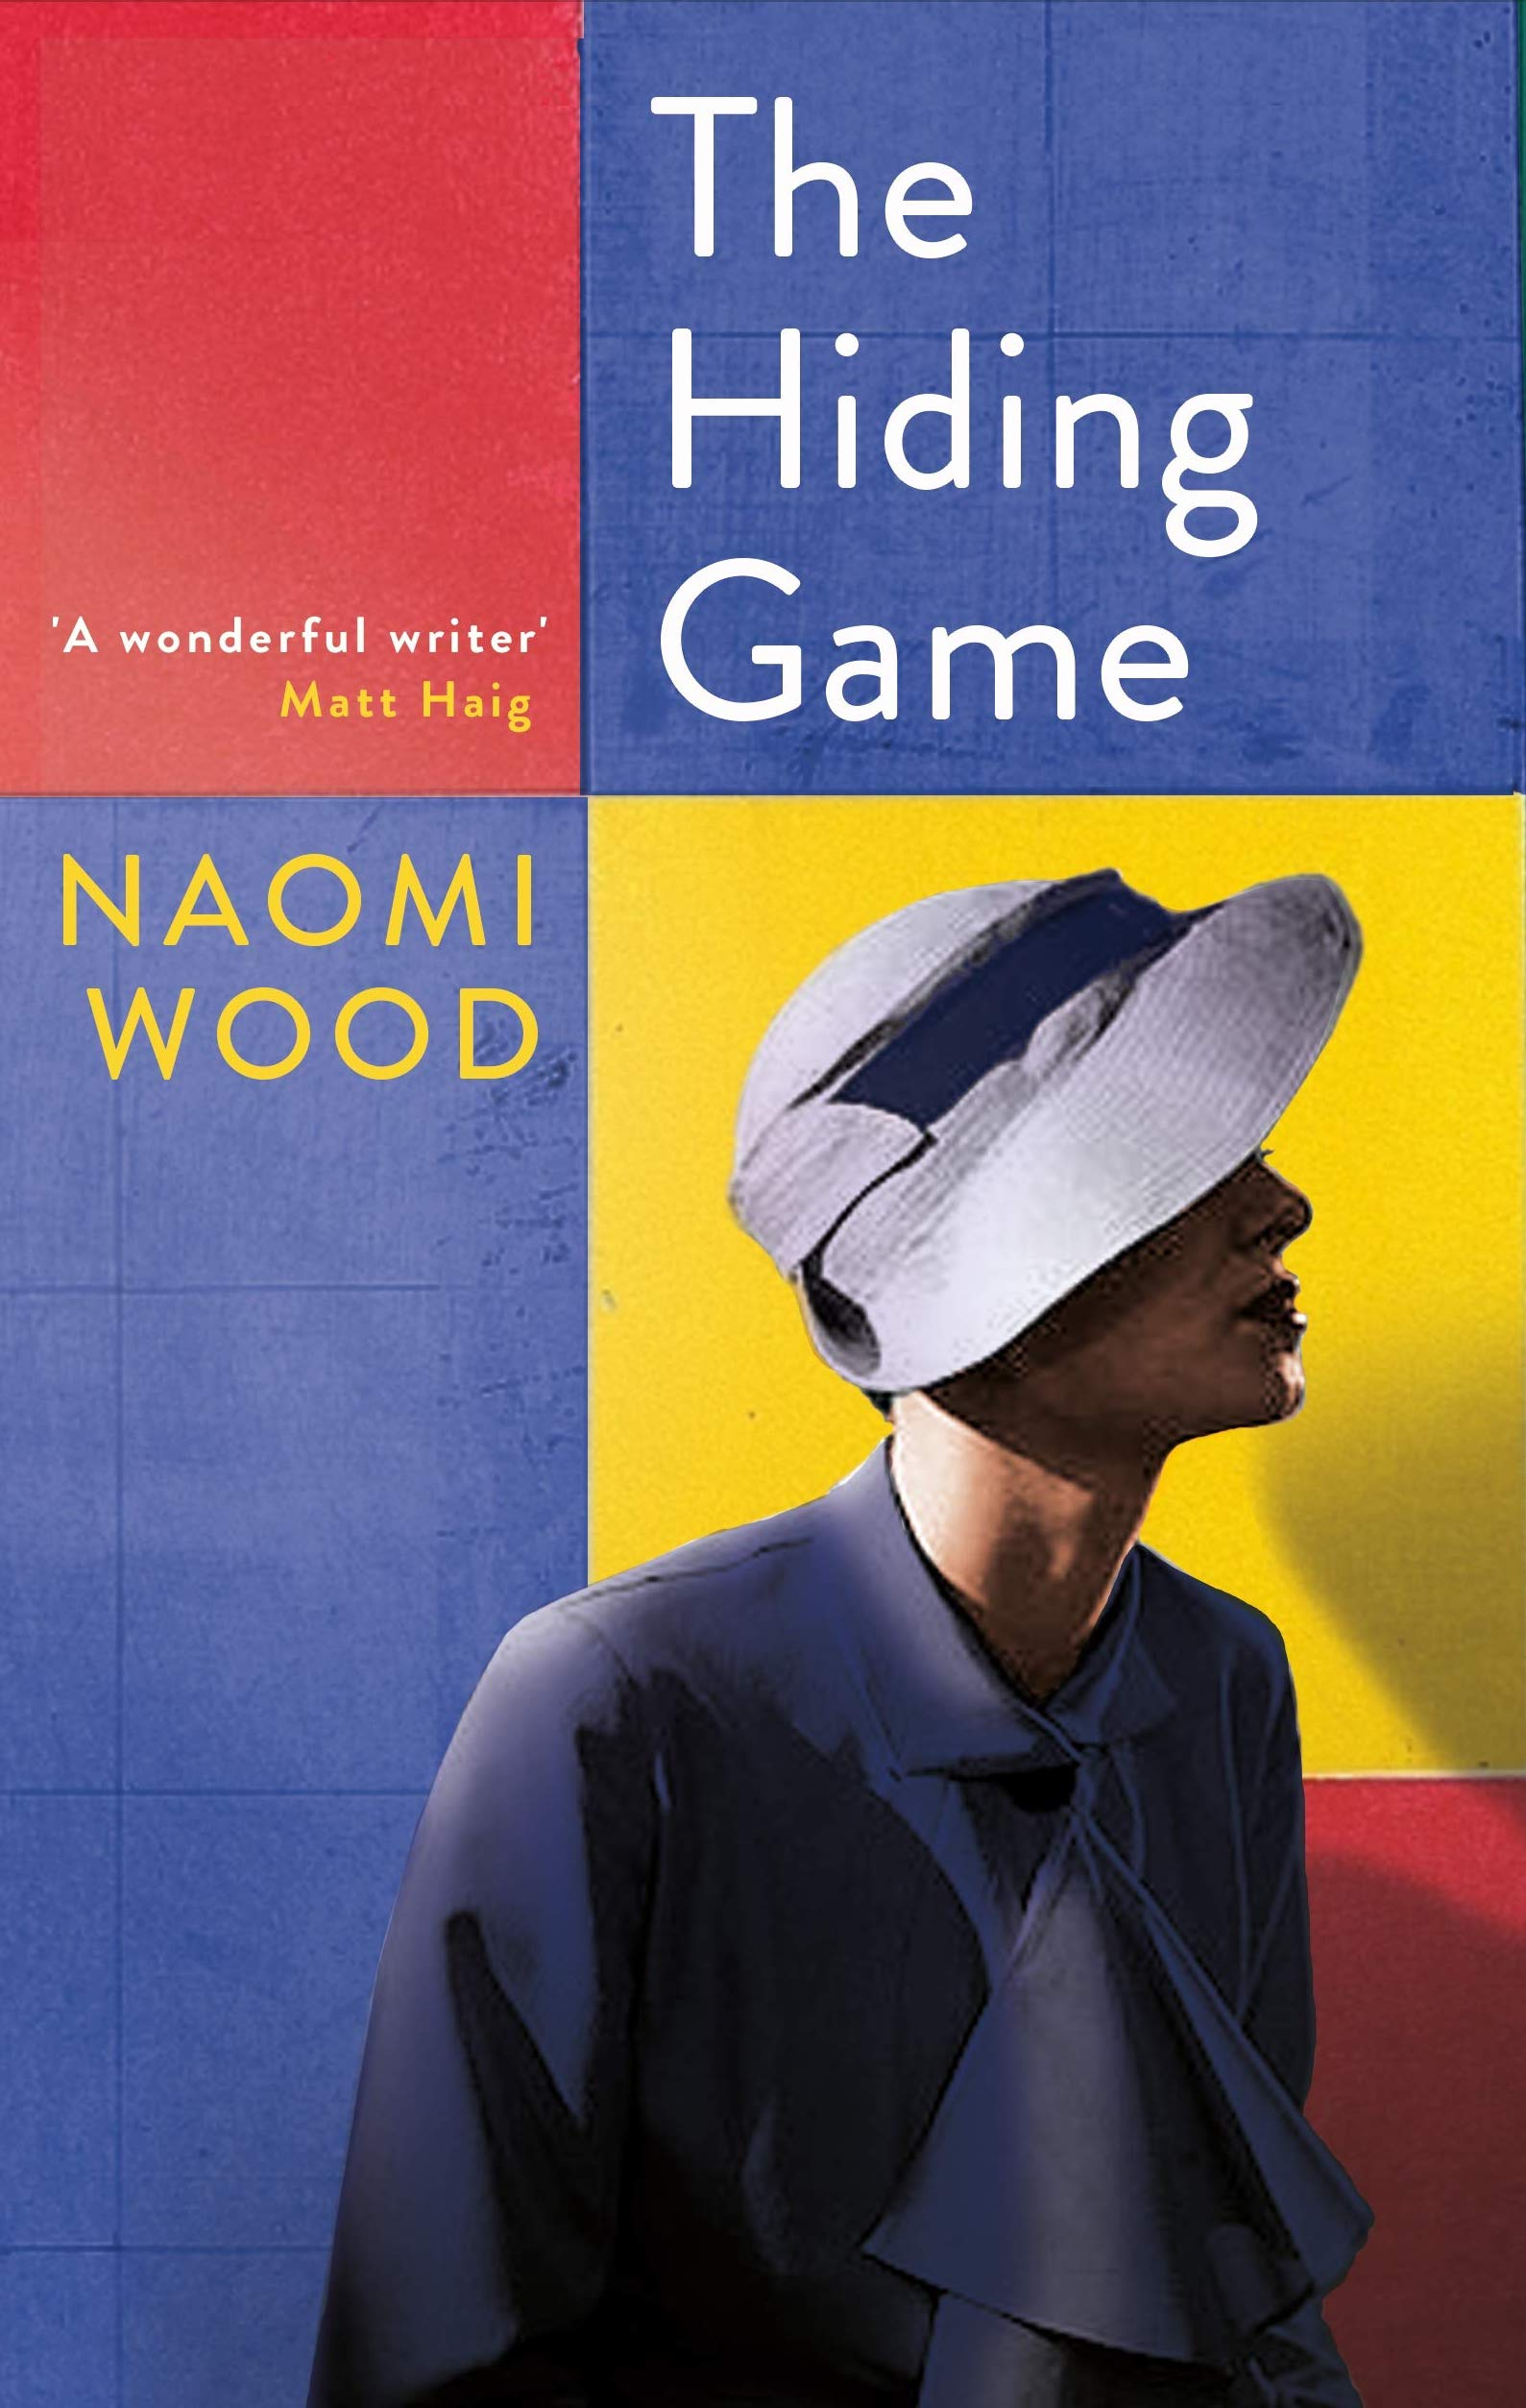 Featured Book - The Hiding Game by Naomi Wood (Picador, 2019)